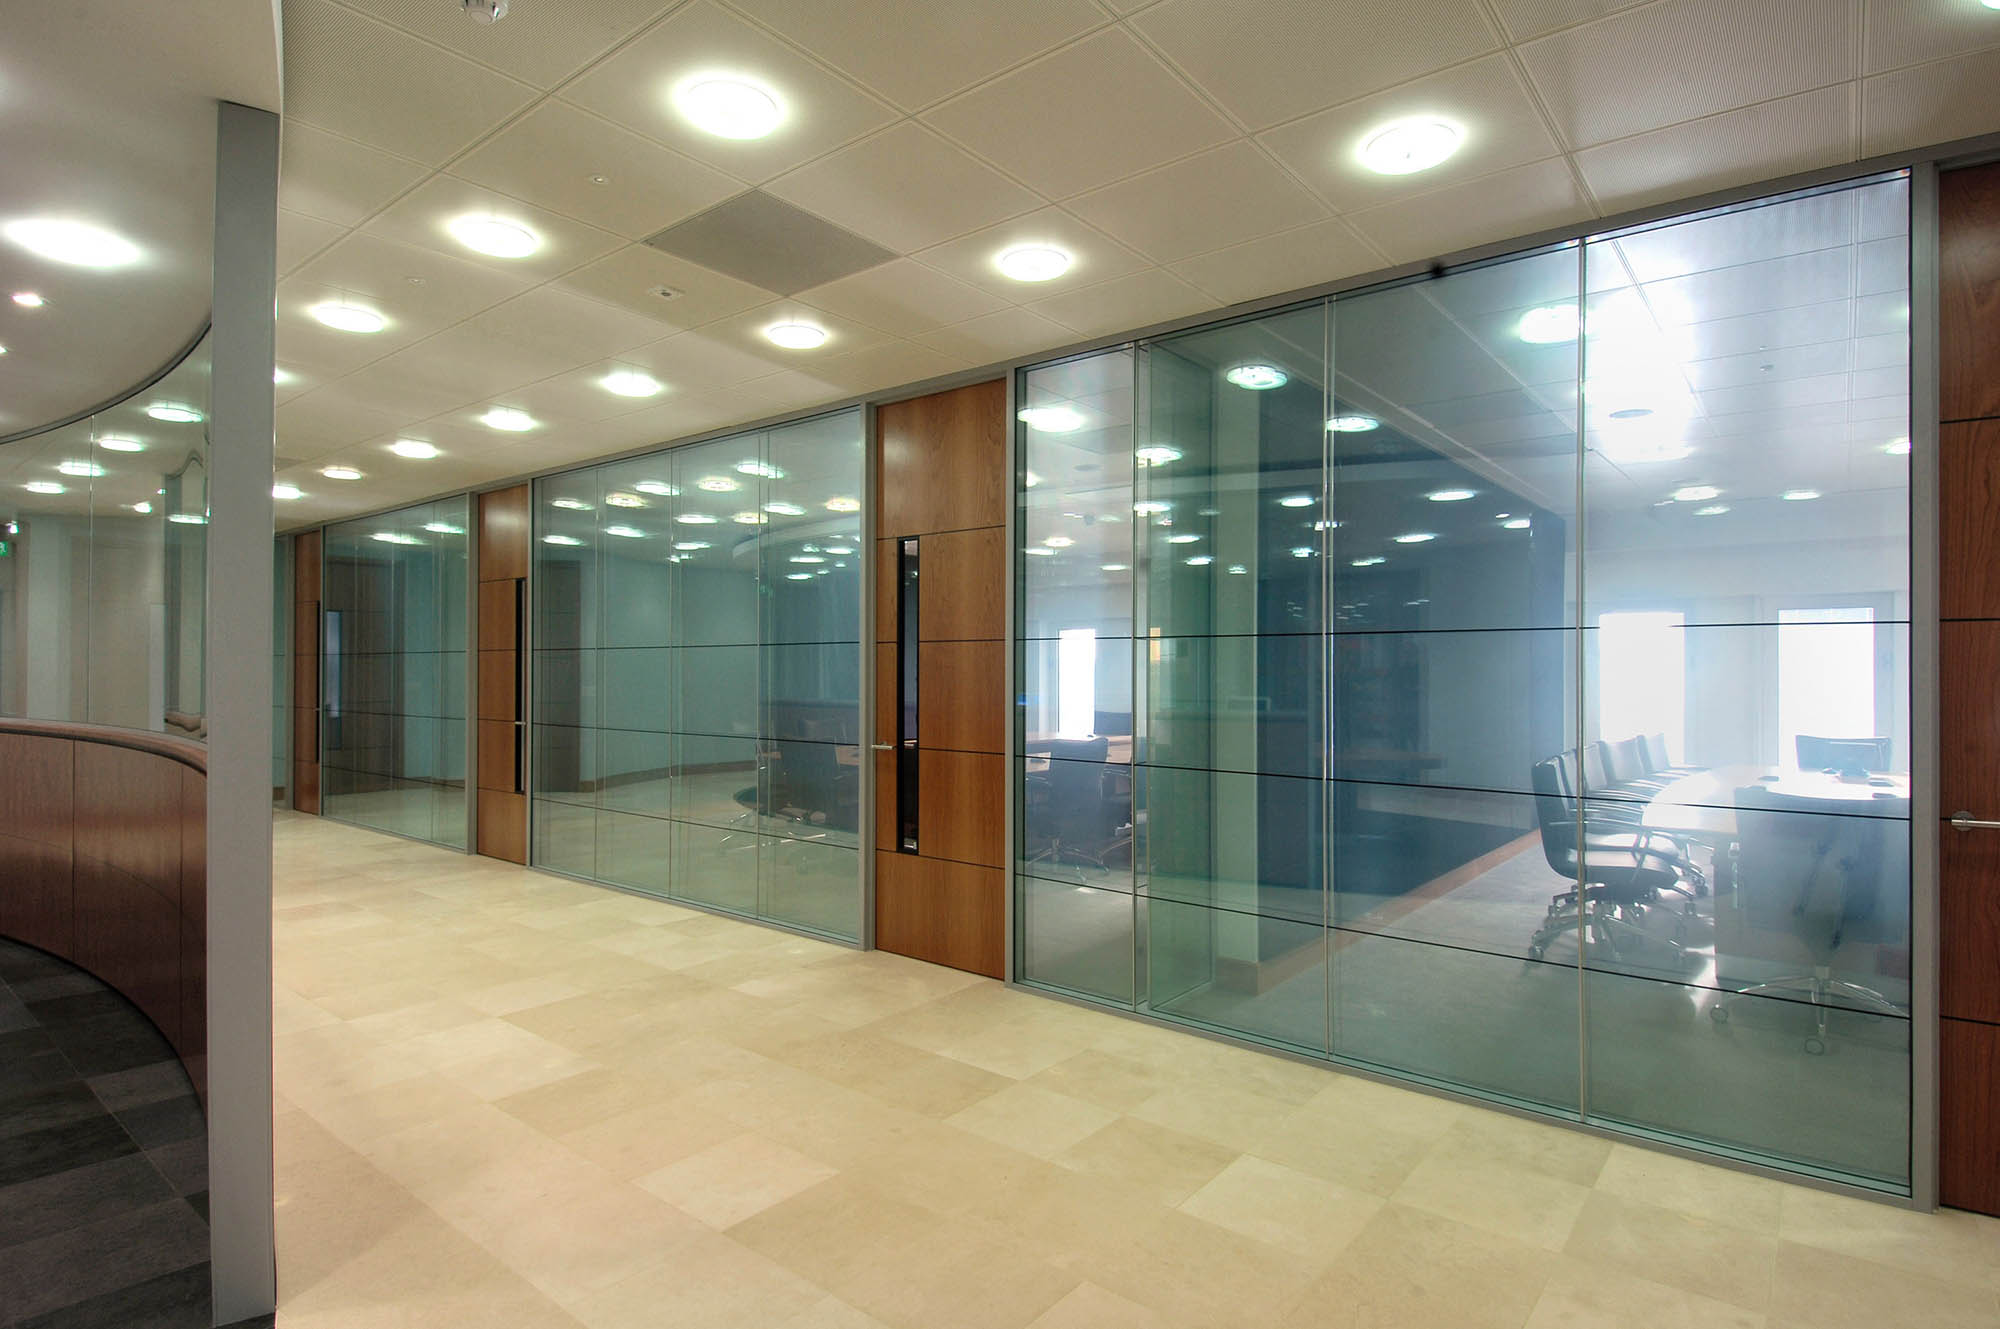 Office Glass Walls Glass Wall Systems Glass Partition  : glass wall systems concord as wall 4 from www.cubicles.com size 2000 x 1329 jpeg 238kB